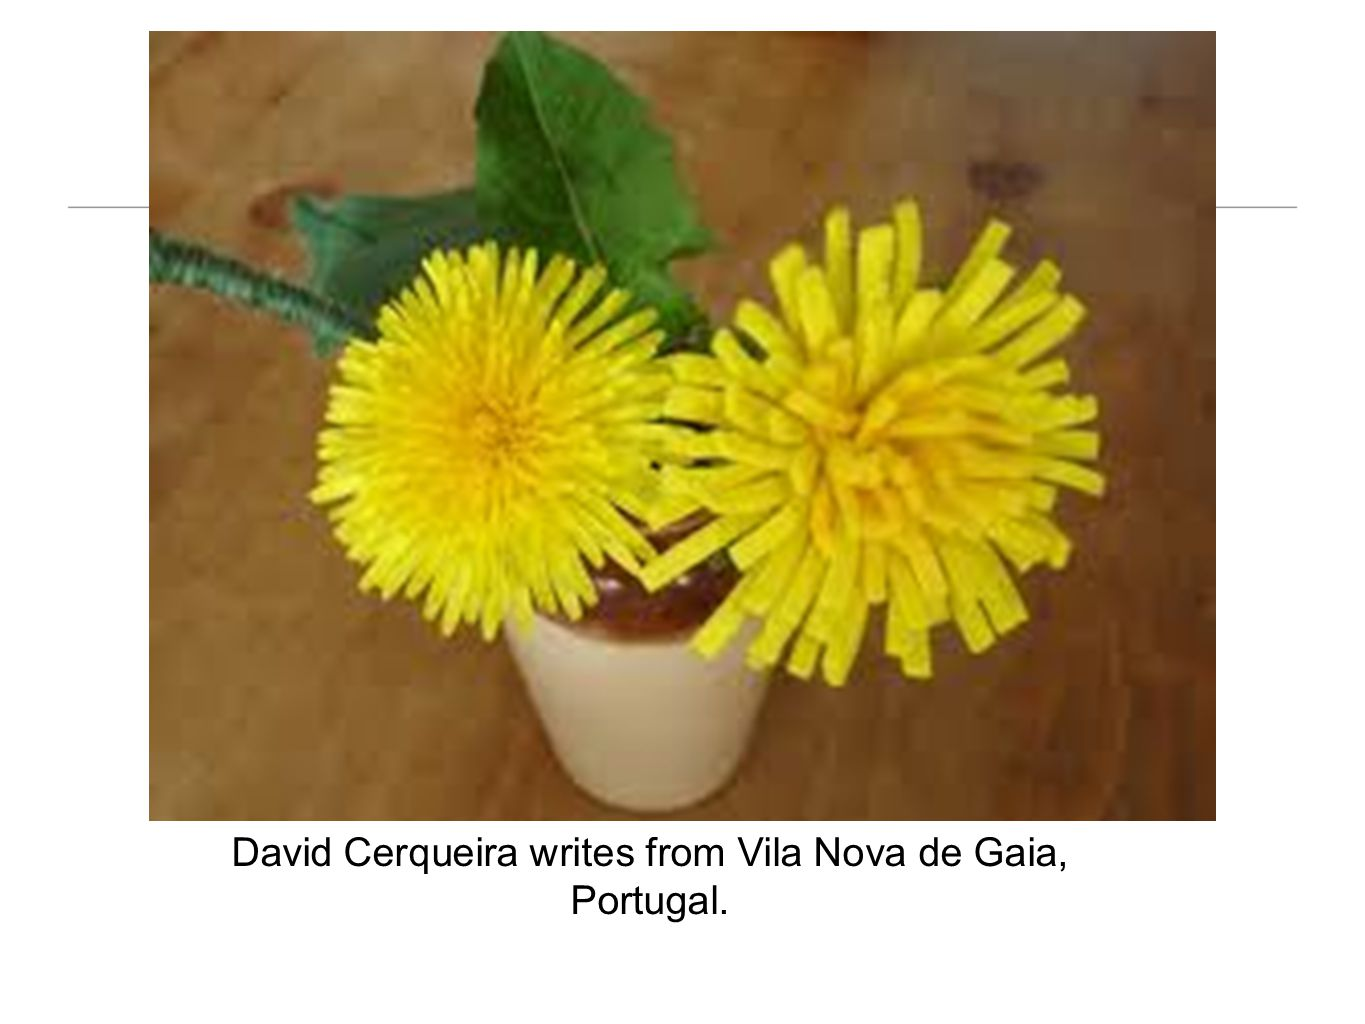 David Cerqueira writes from Vila Nova de Gaia, Portugal.